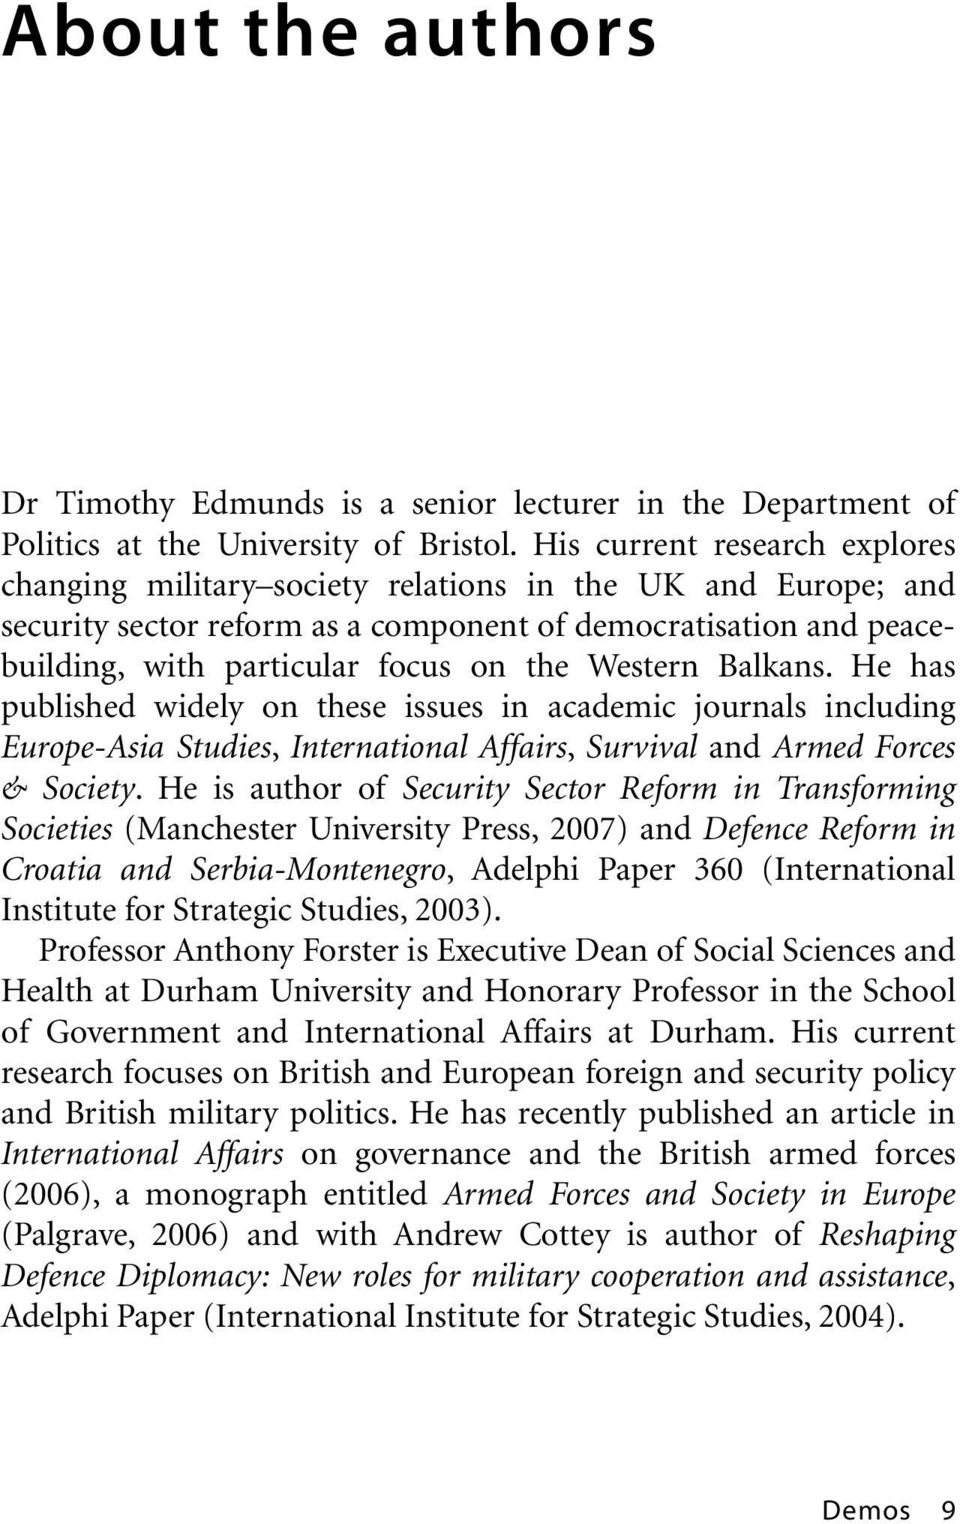 Western Balkans. He has published widely on these issues in academic journals including Europe-Asia Studies, International Affairs, Survival and Armed Forces & Society.